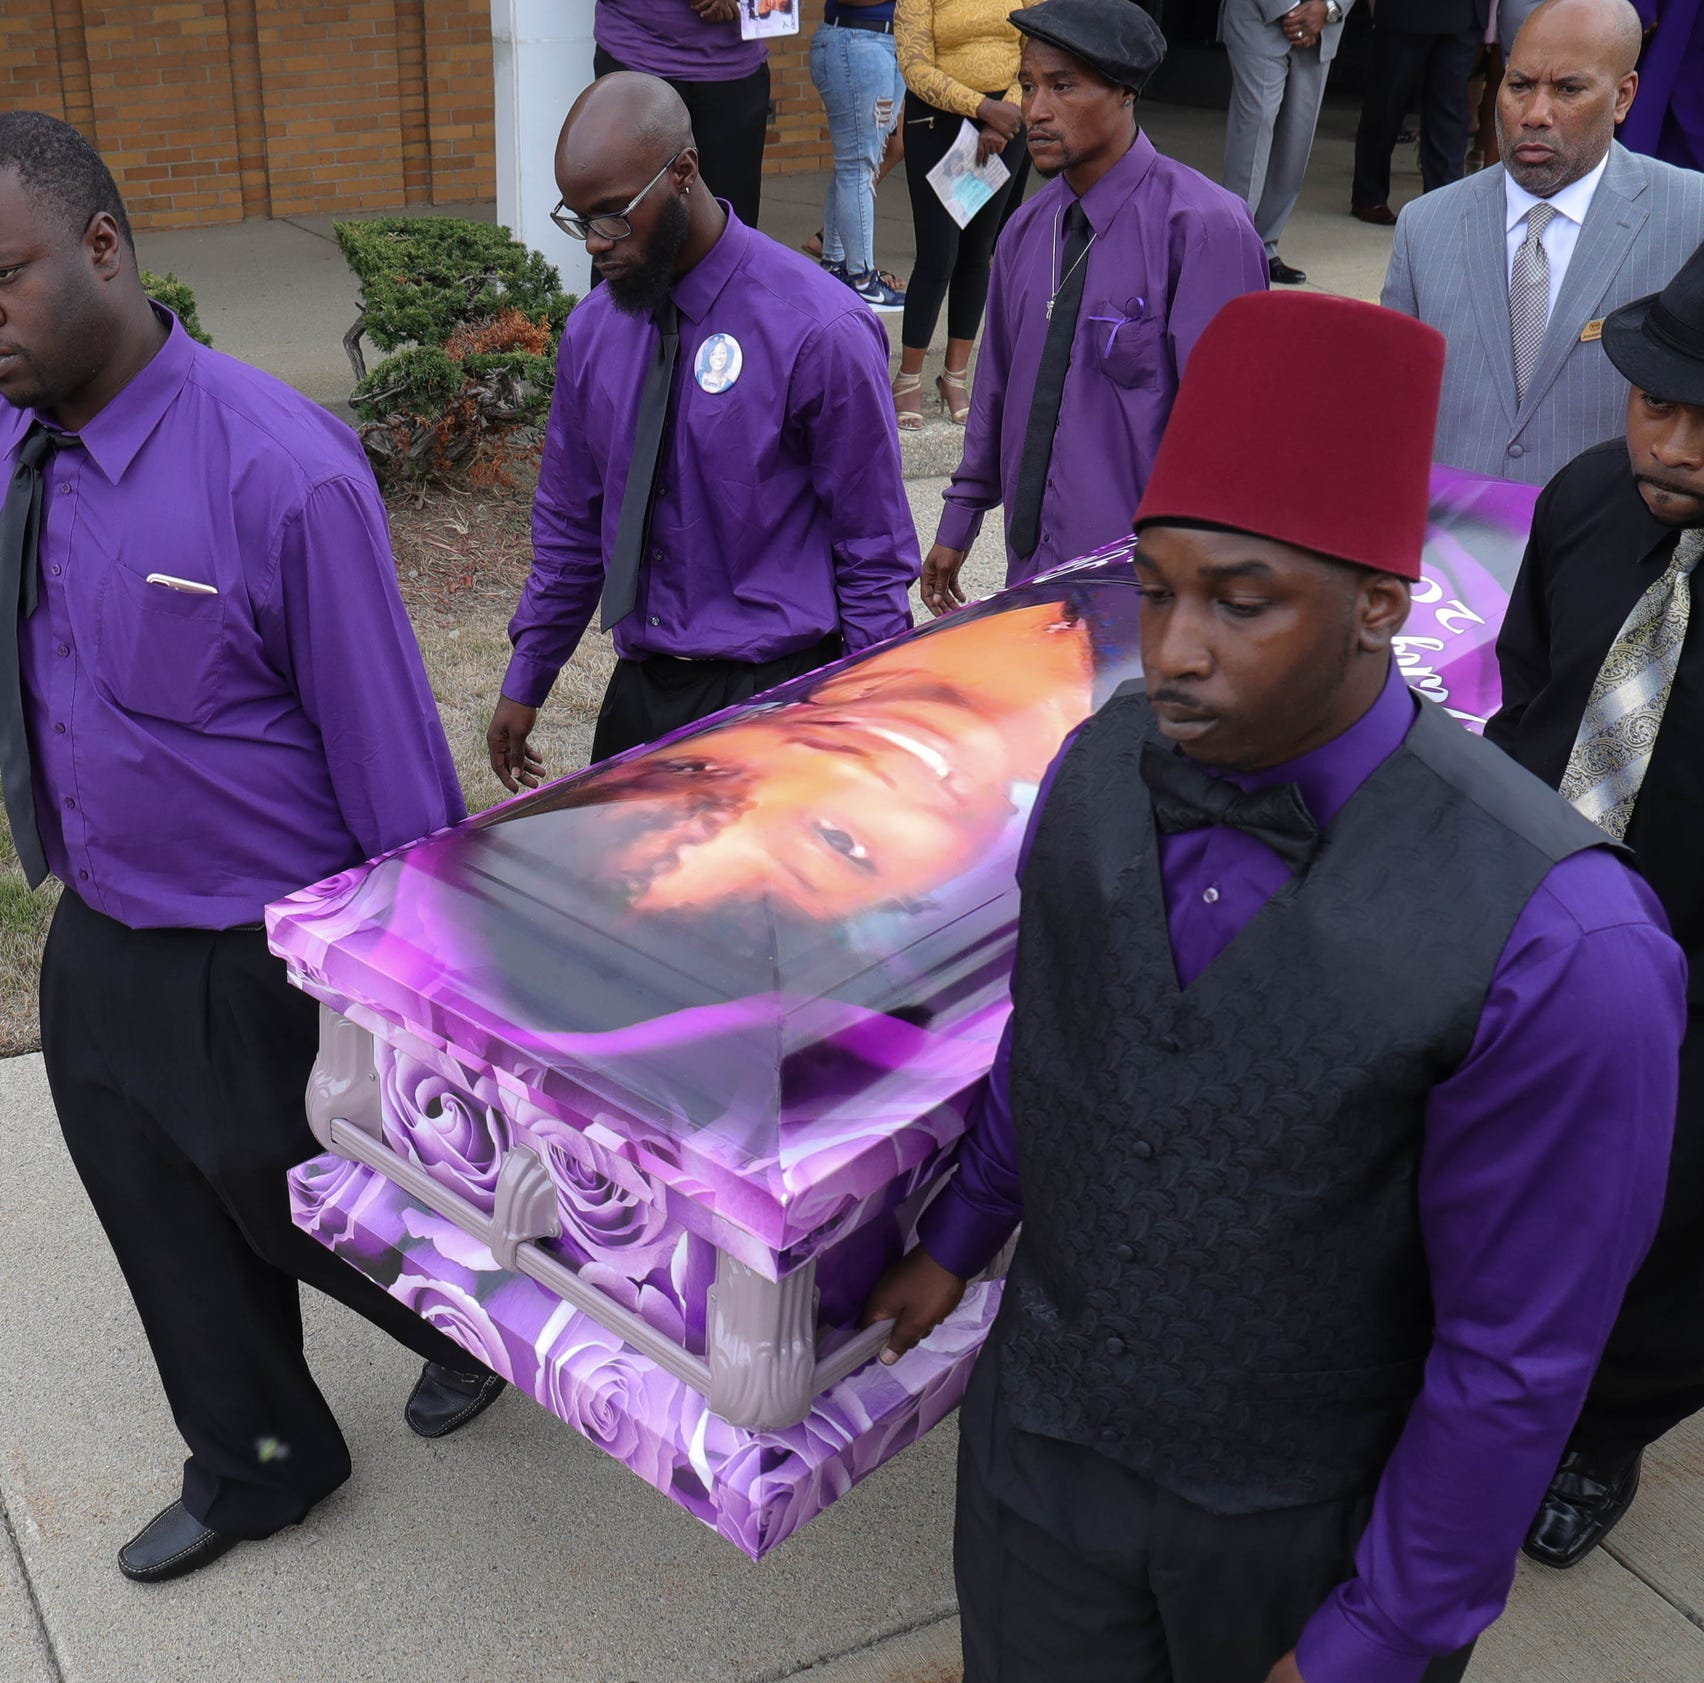 Minister at student's funeral: 'This baby is supposed to be in school'